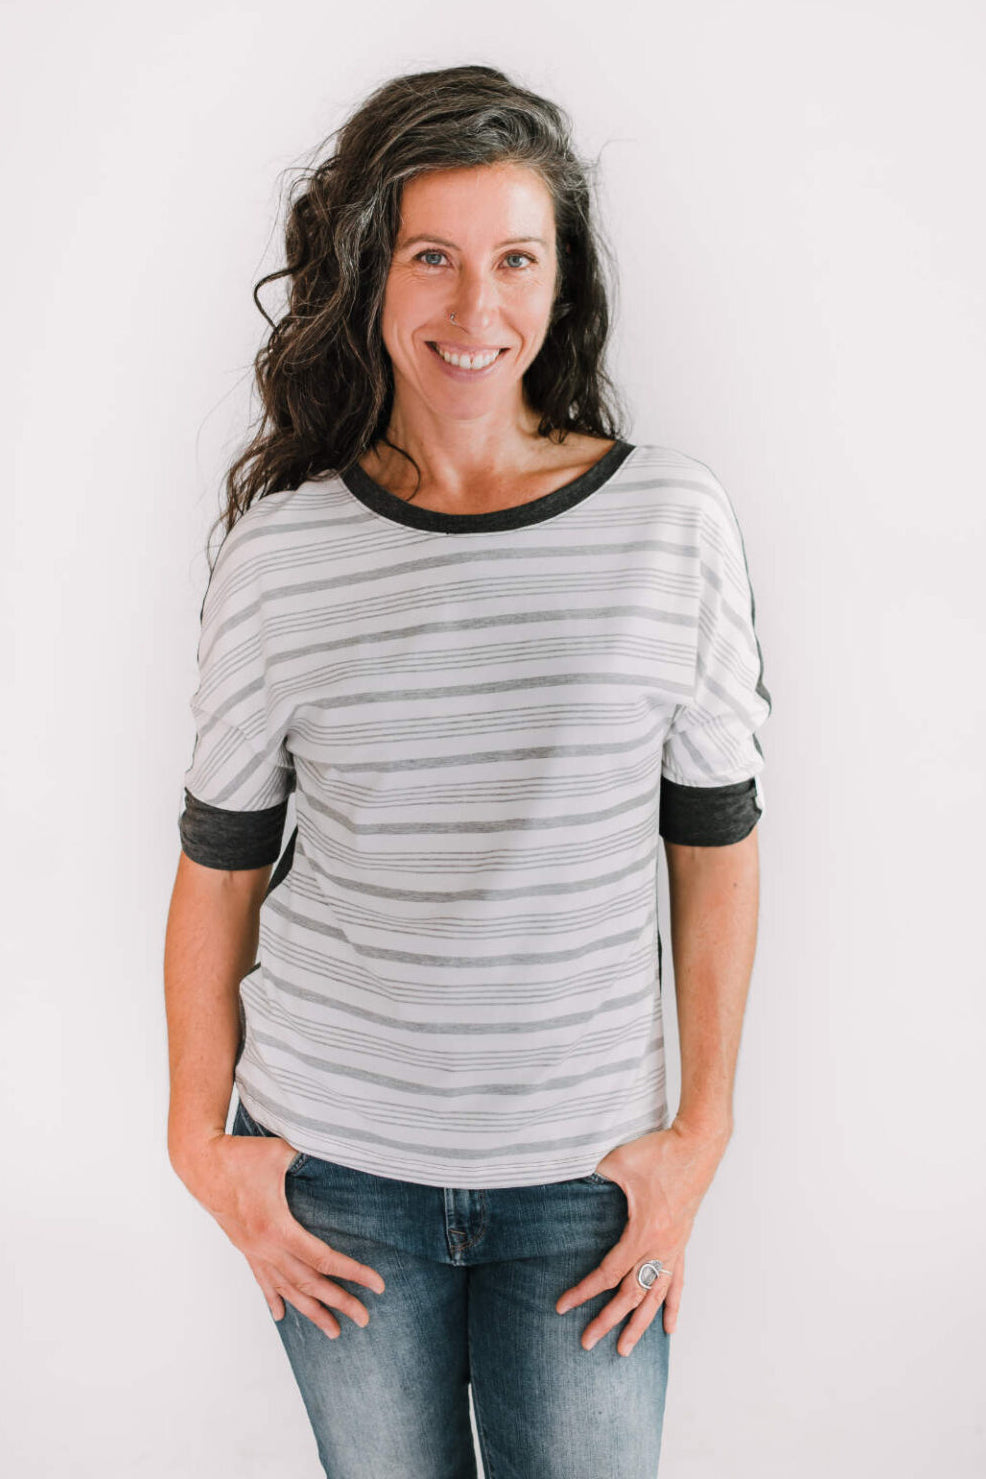 MARIE C Boreal Top in Charcoal and White Stripes FW2020/2021 (front view)